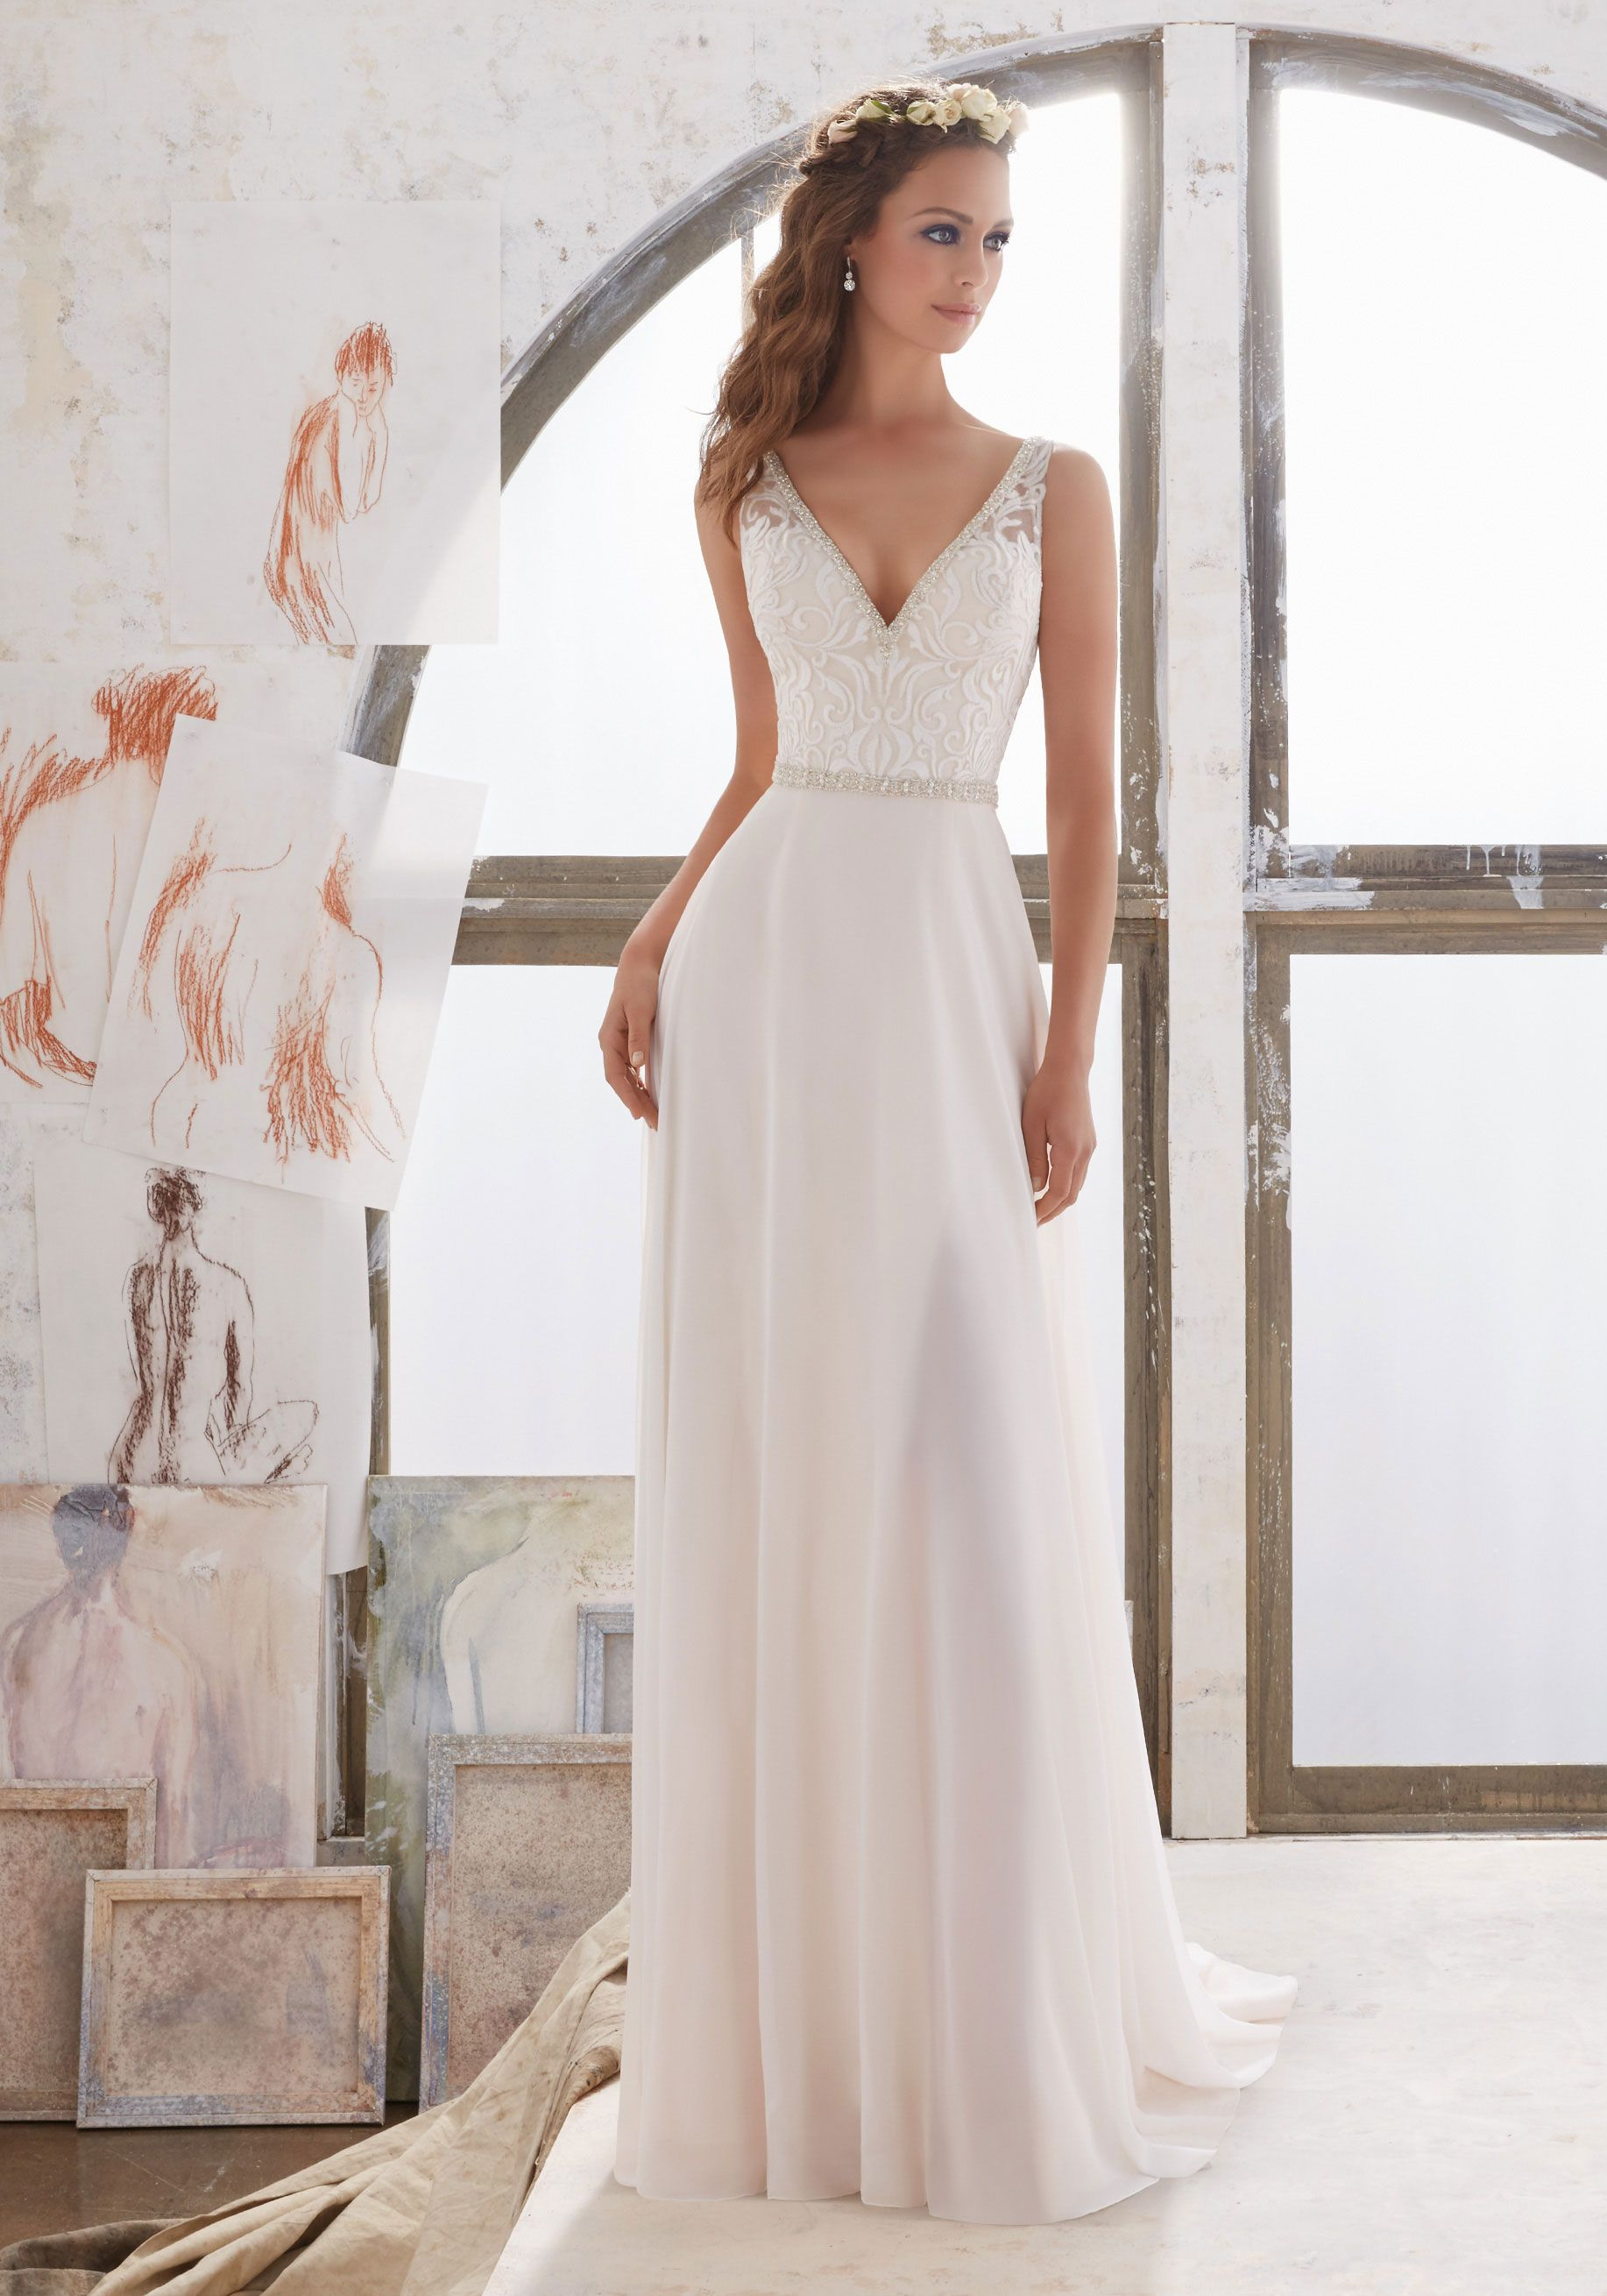 Designer wedding dresses and bridal gowns by morilee this sheath designer wedding dresses and bridal gowns by morilee this sheath bridal gown has an embroidered junglespirit Choice Image